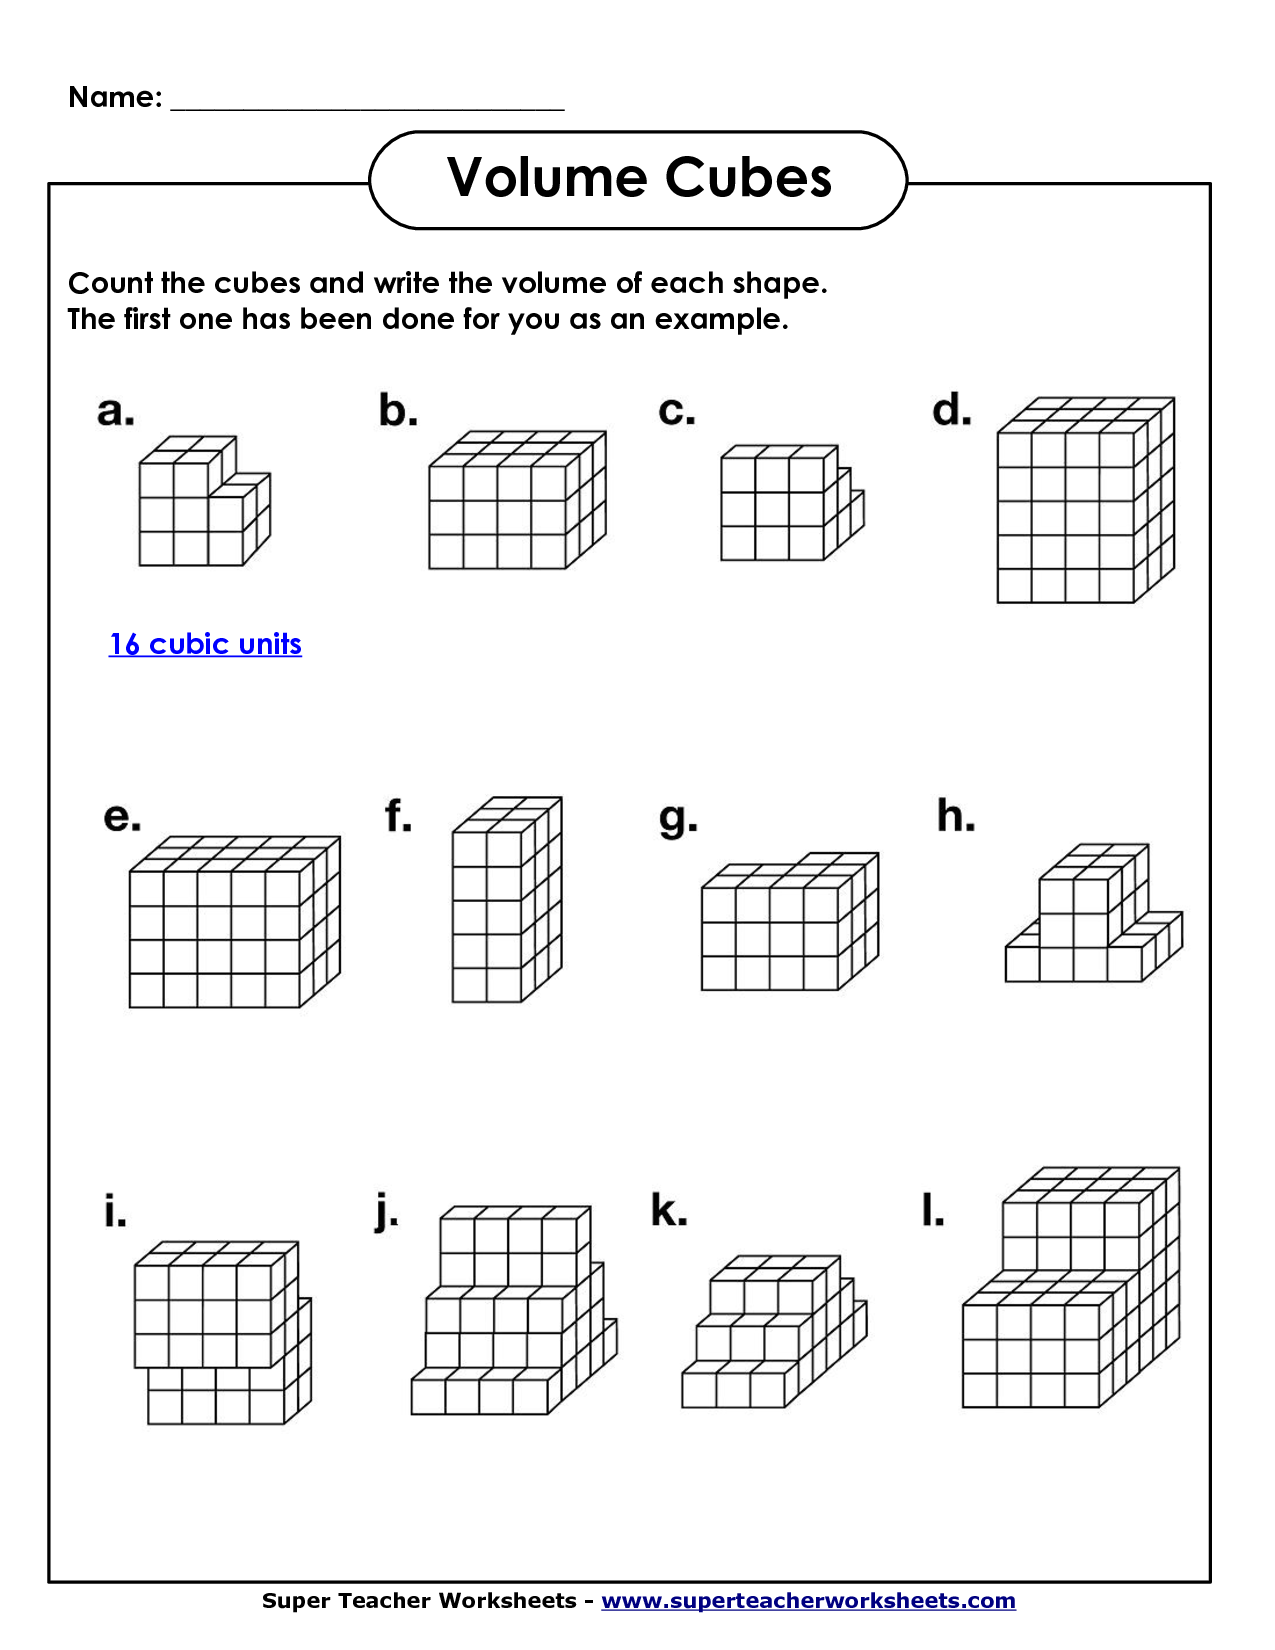 Worksheets 5th Grade Math Worksheets Pdf volume geometry with cubic units pdf math worksheets cubes worksheets